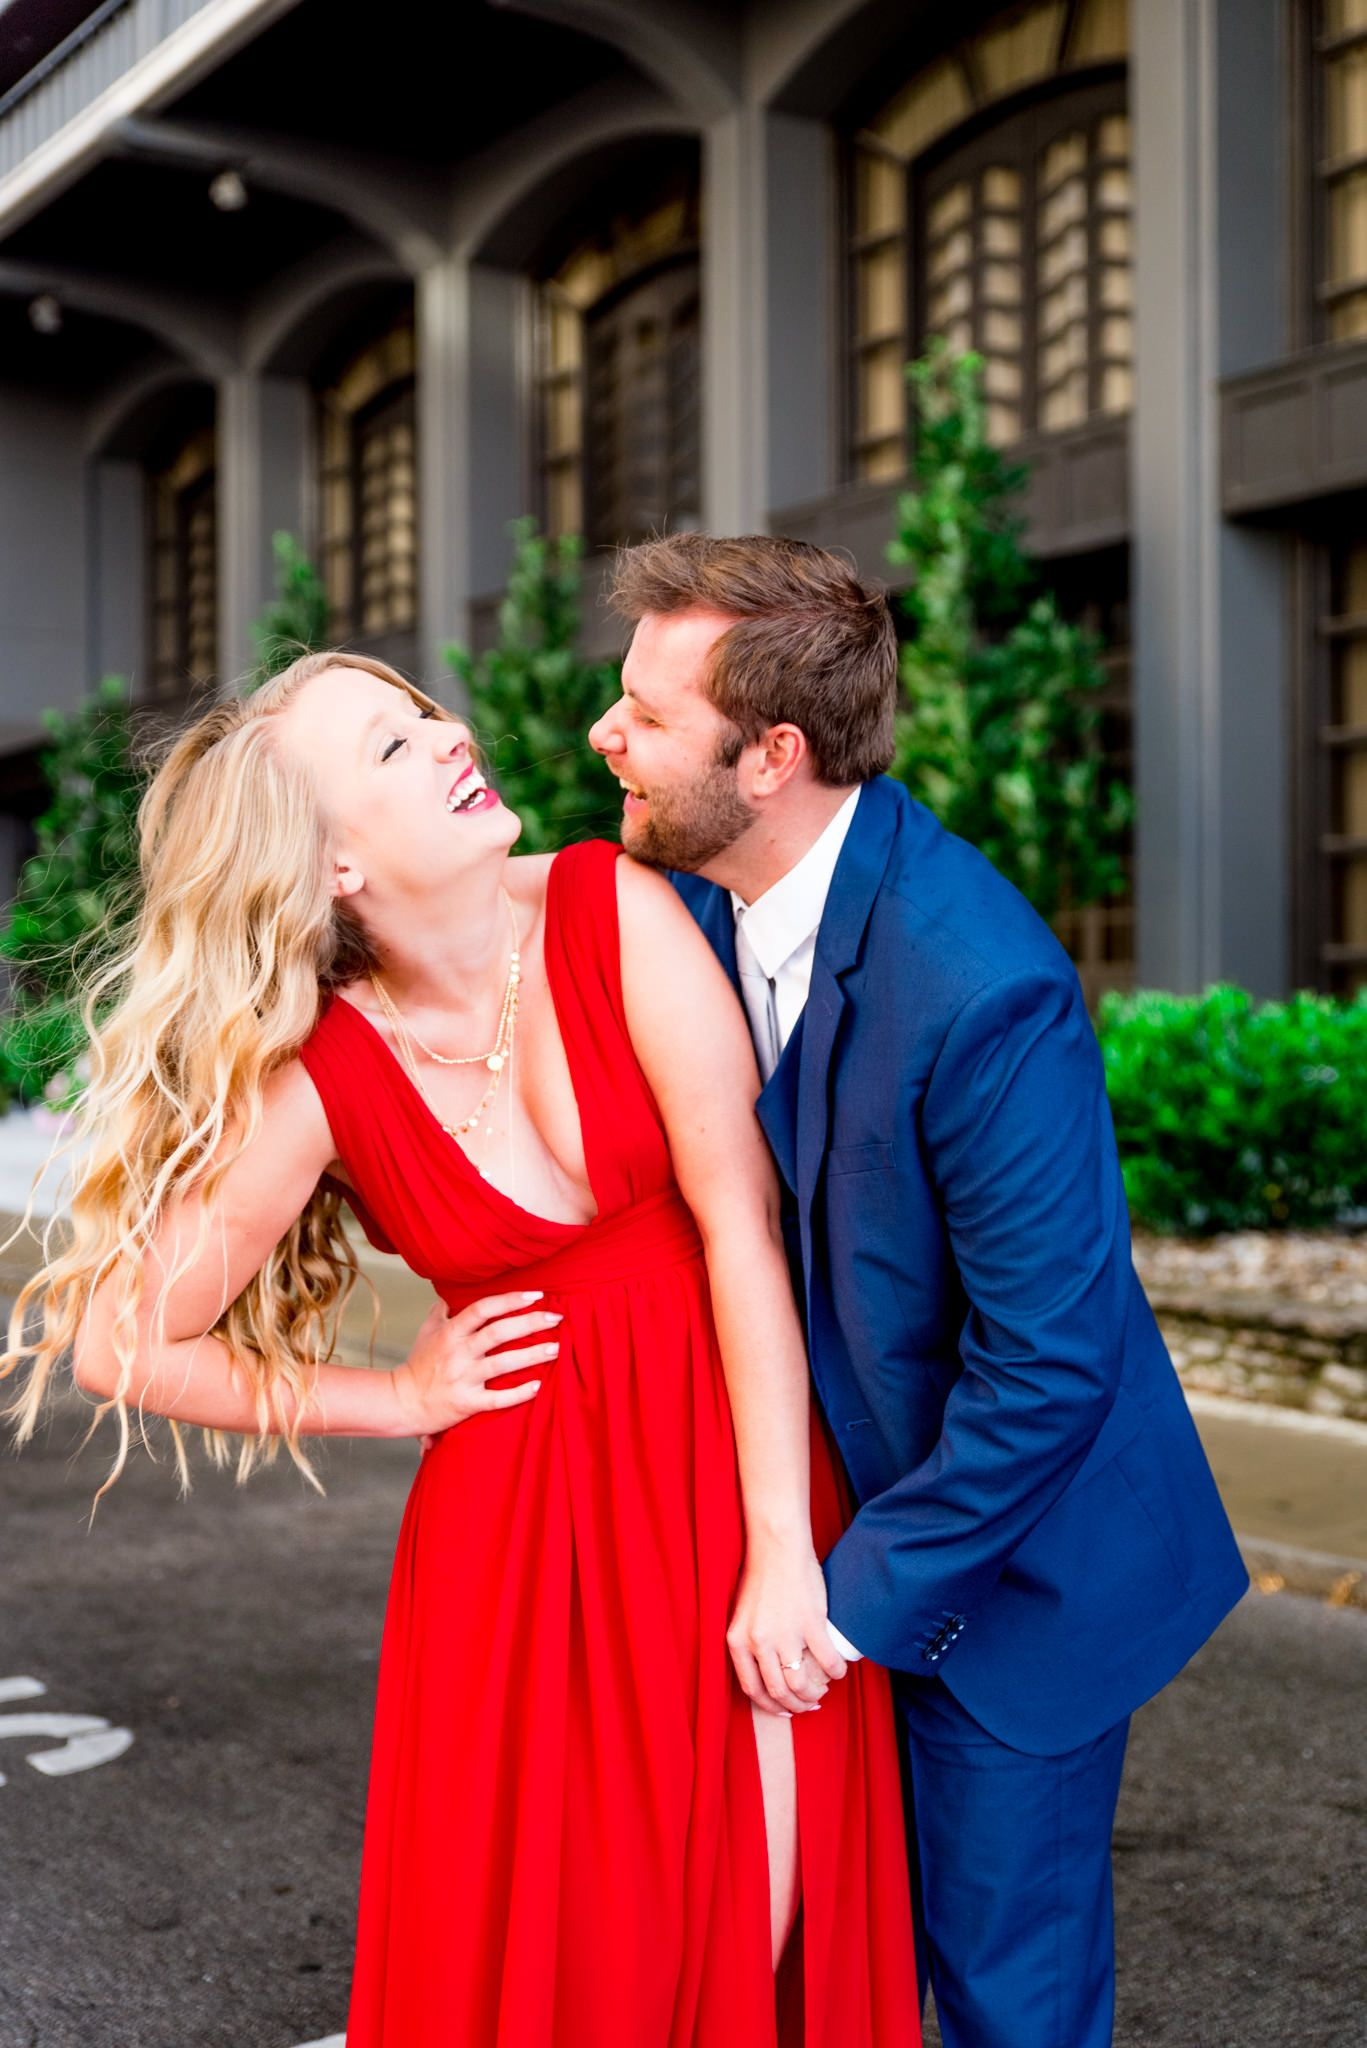 blonde woman in red dress laughing with fiance in navy blue suit tries to kiss her